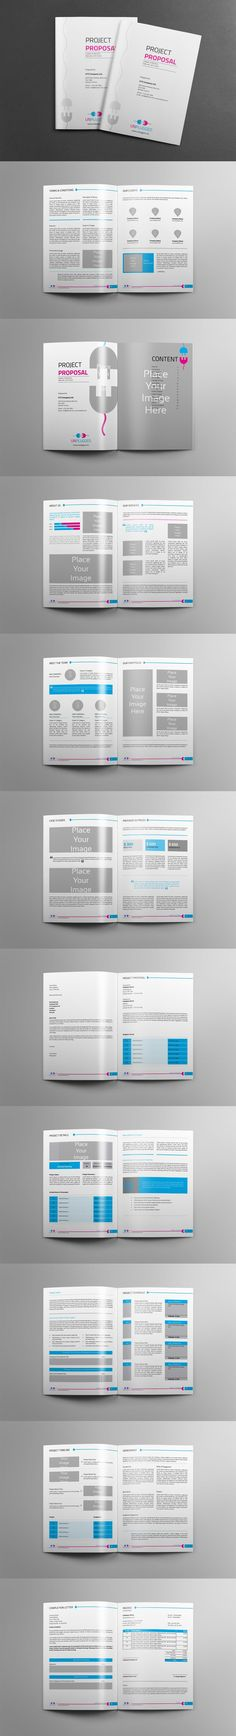 Web-design Proposal Template InDesign INDD A4 and US Letter Size - proposals templates